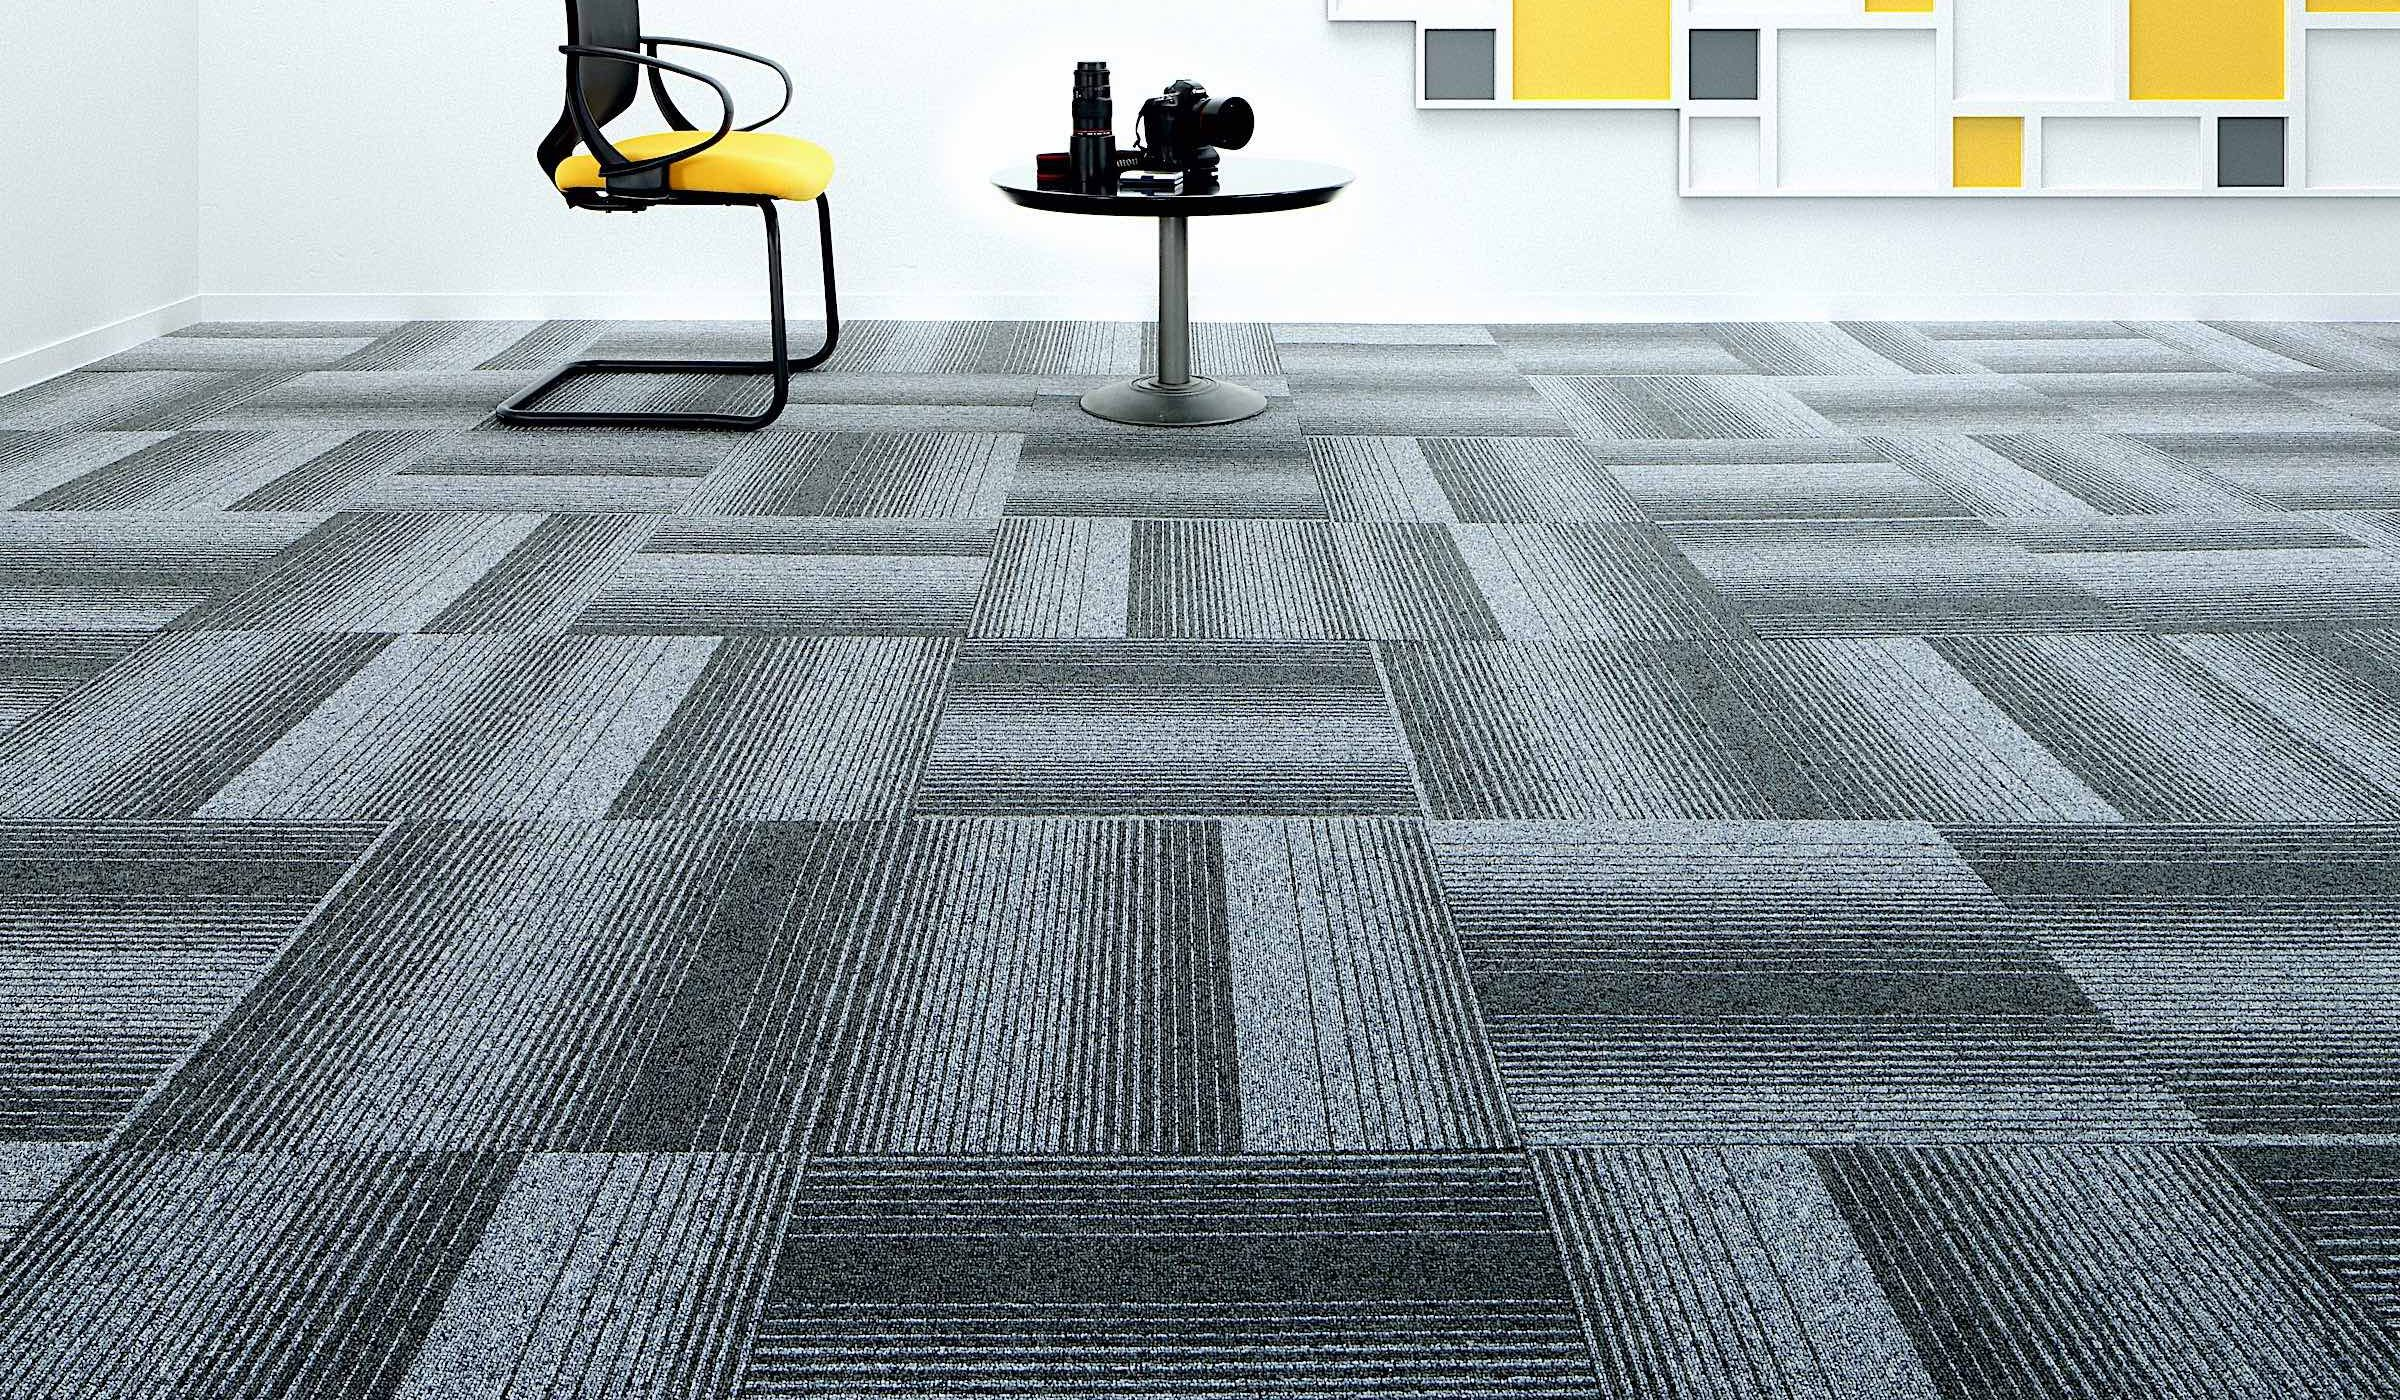 Diversity Groove | Paragon Carpet Tiles | Commercial Carpet Tiles | Design Carpet Tiles 1